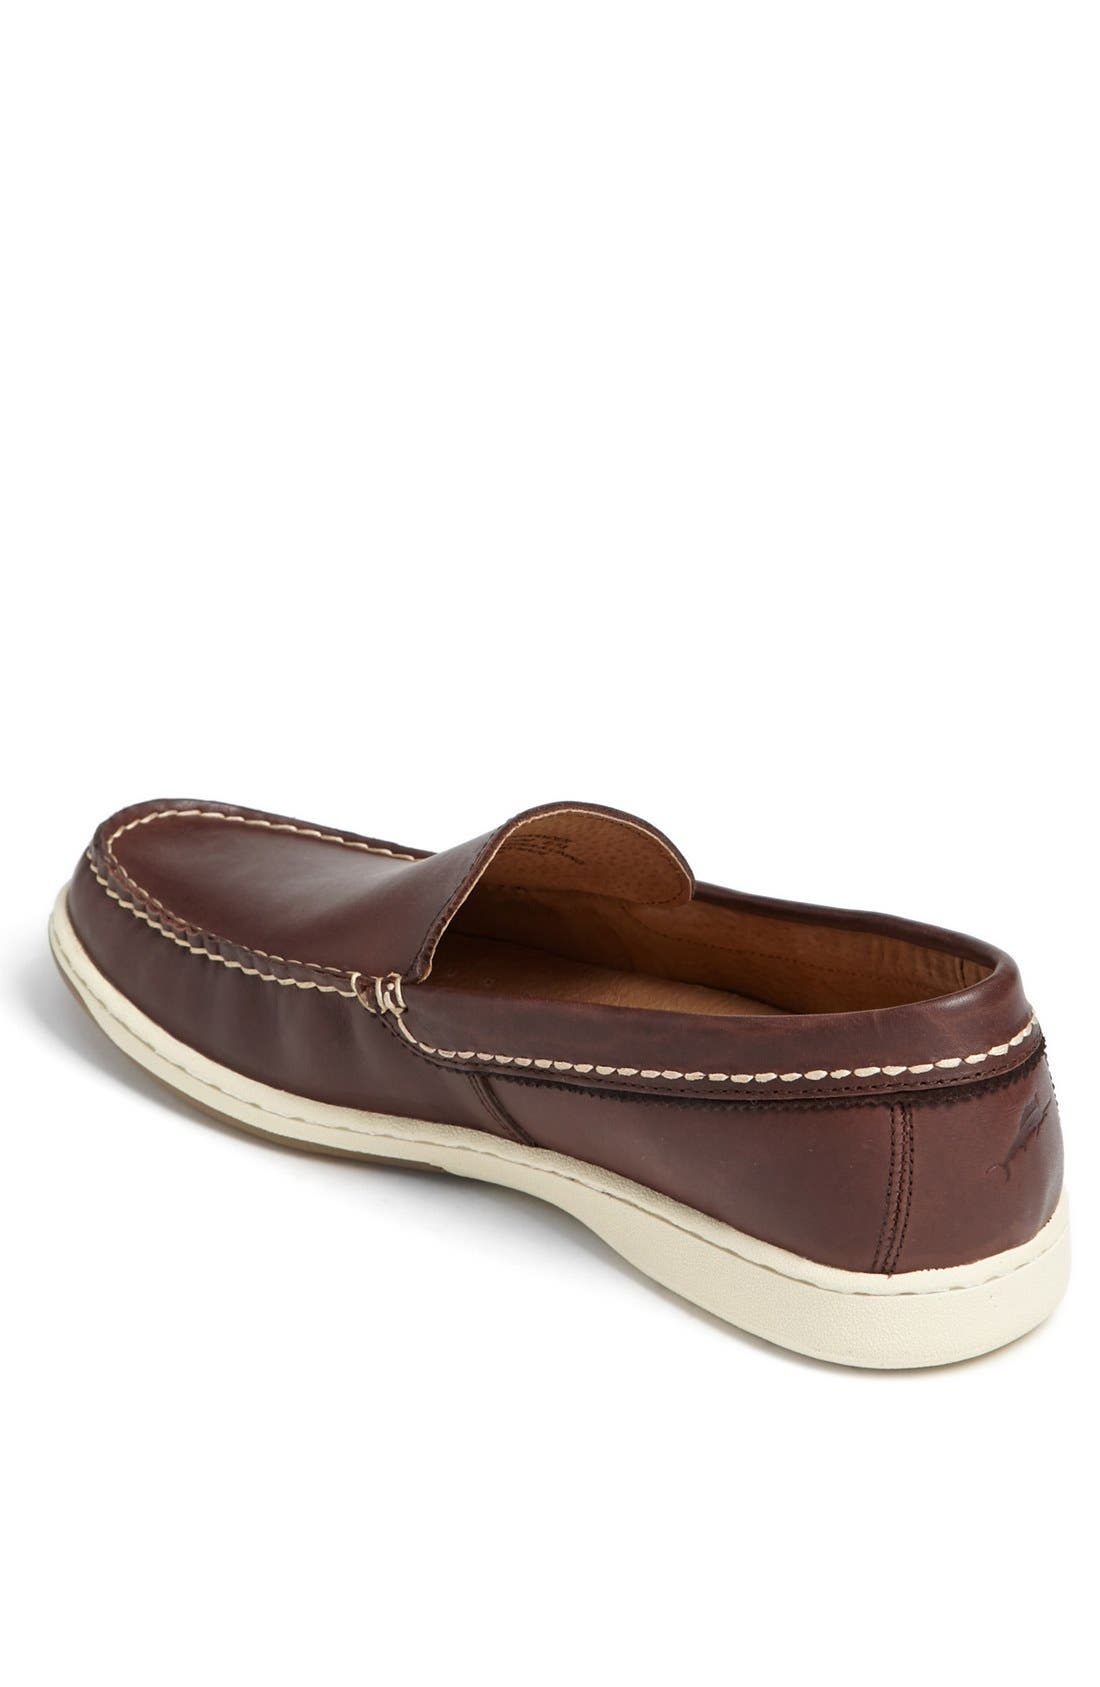 Alternate Image 2  - Tommy Bahama 'Alexander' Slip-On